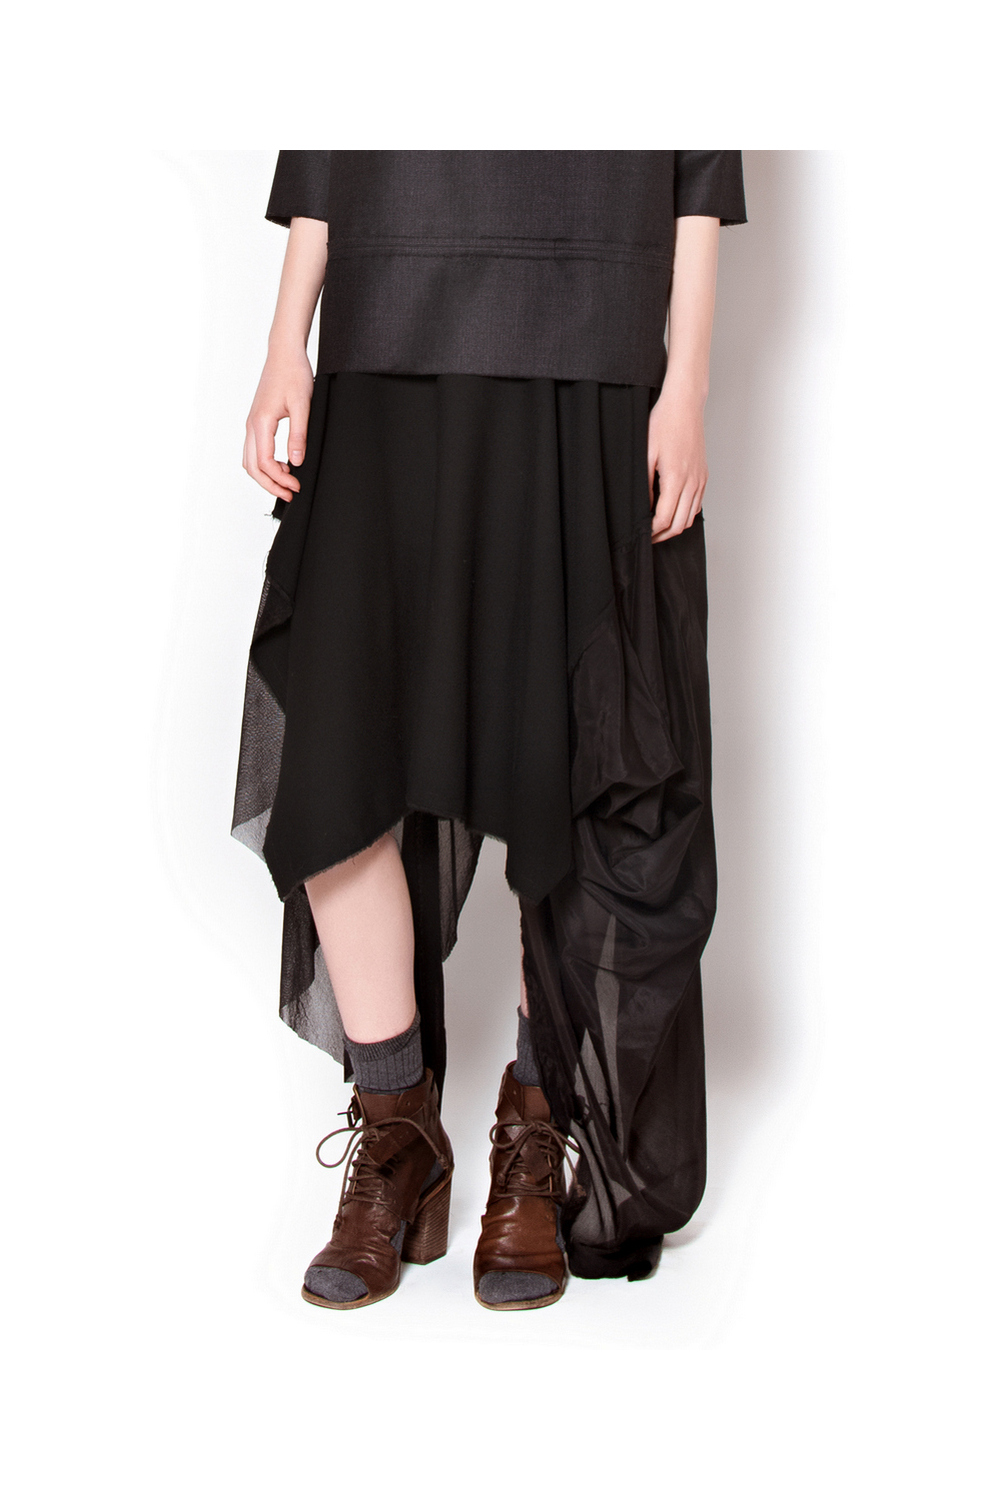 Buy Black women's comfortable silk chiffon everning skirt, Designer skirt for ladies